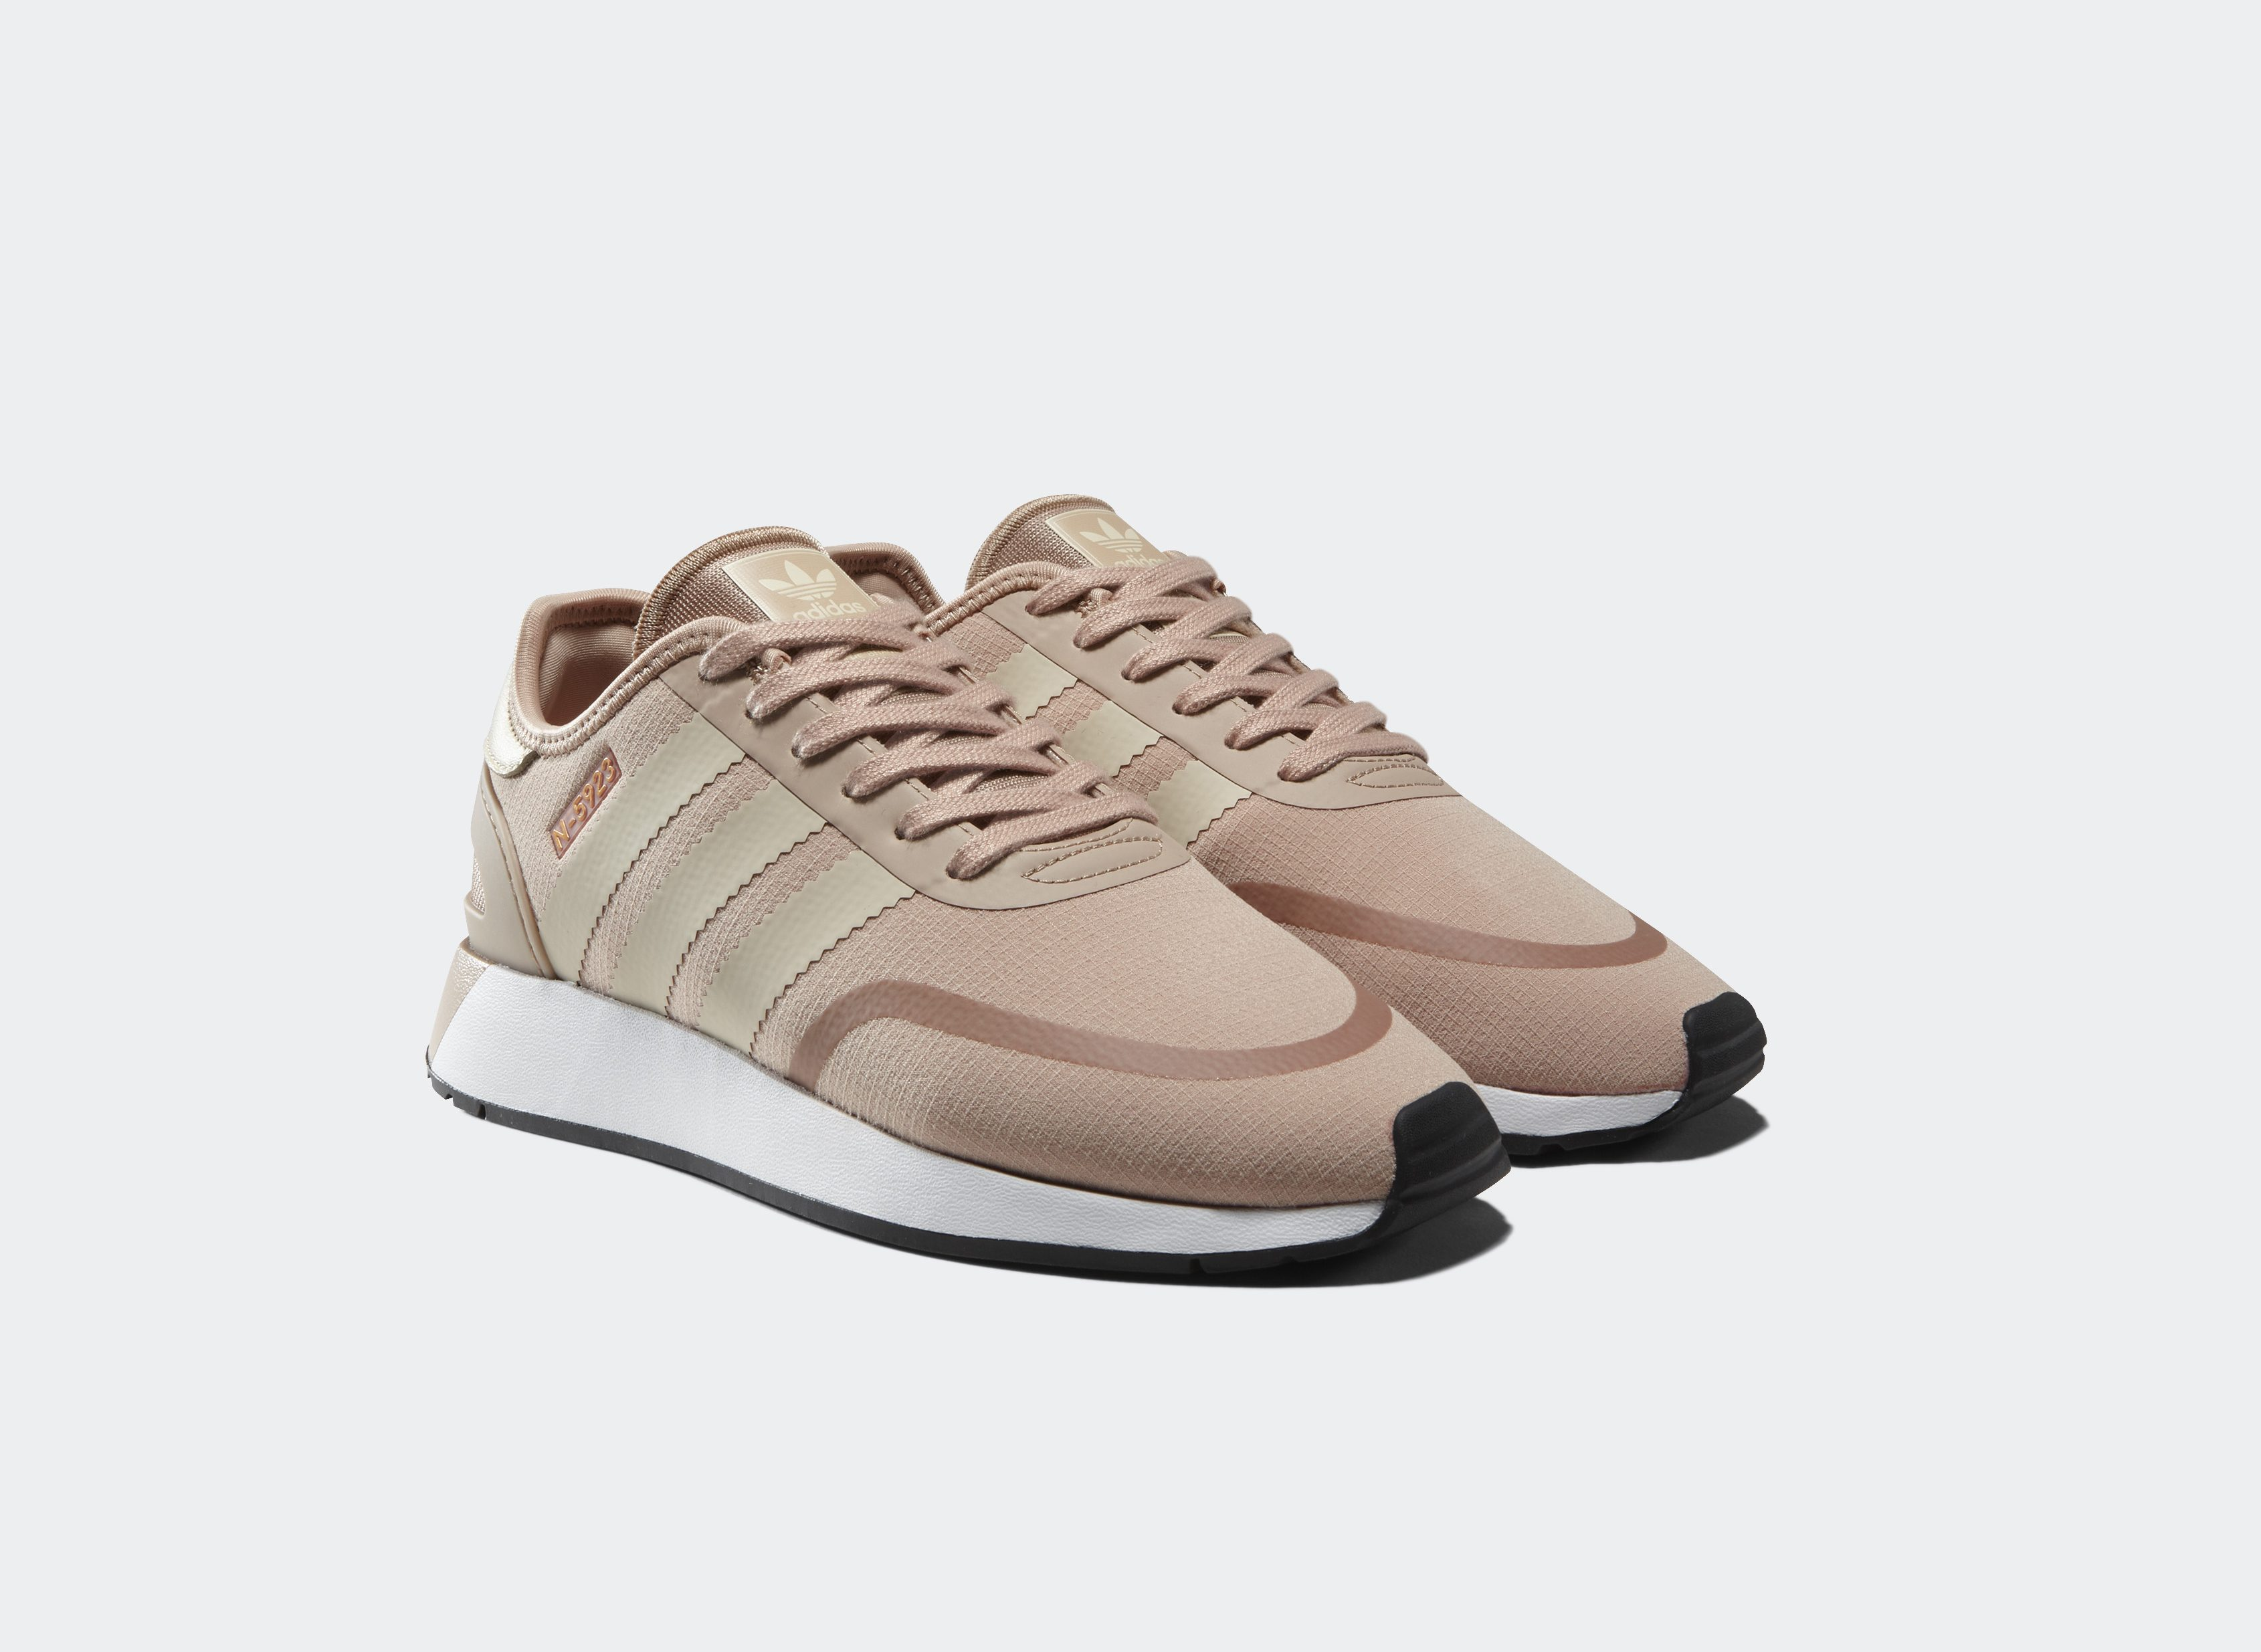 The adidas I-5923 Sheds its Boost and